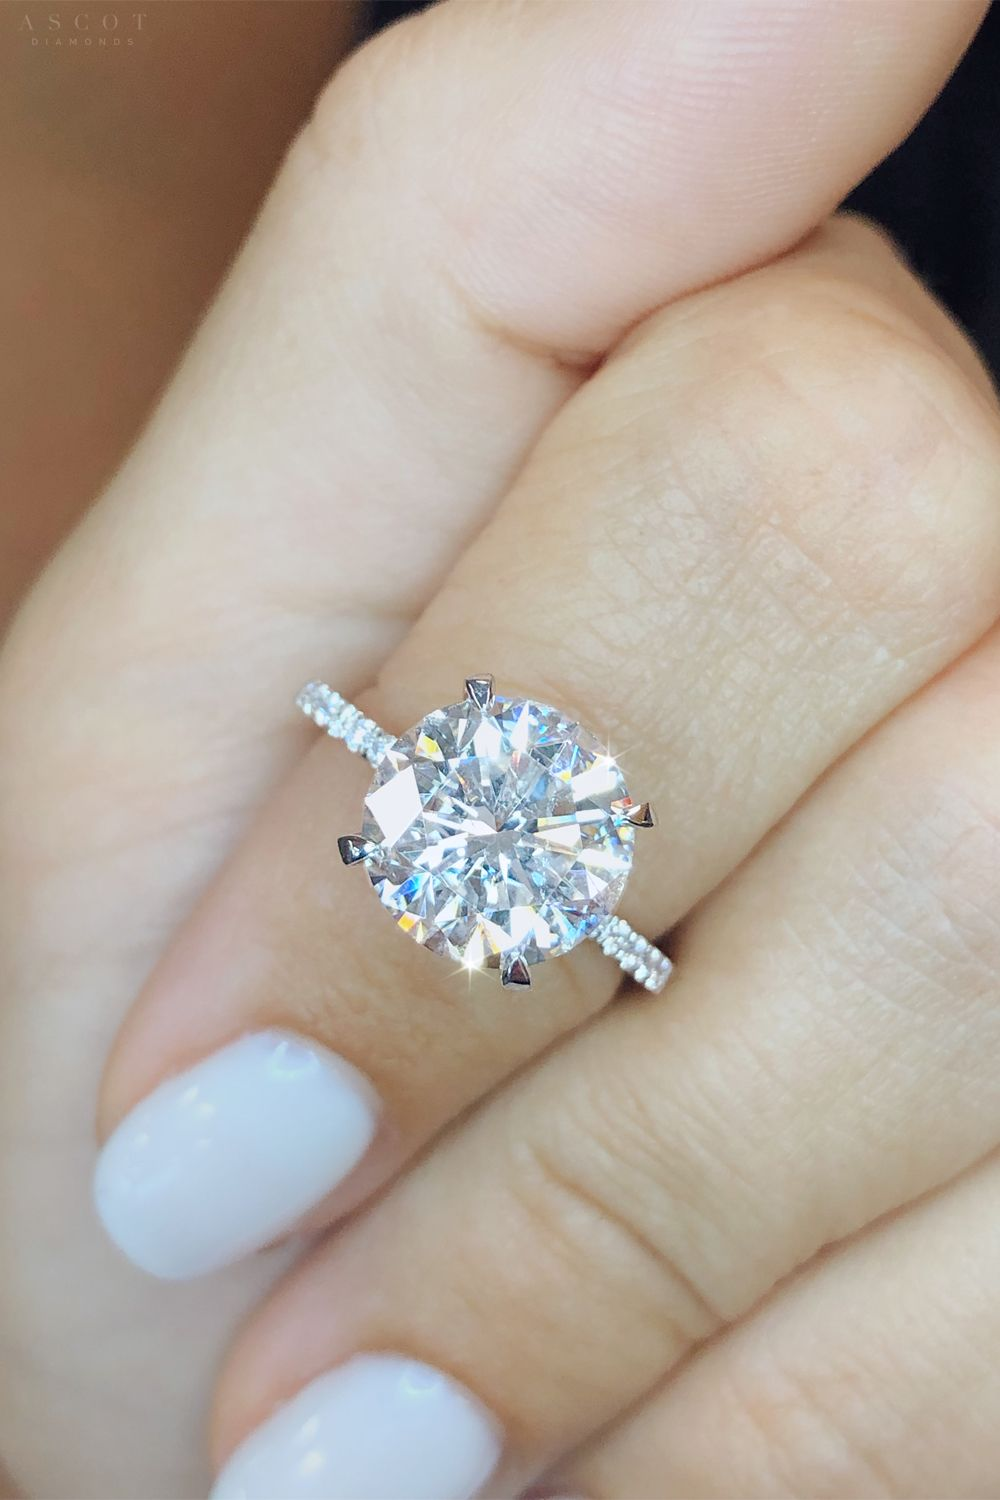 Diamond brilliance at its best with this Round cut diamond engagement ring by Ascot Diamonds